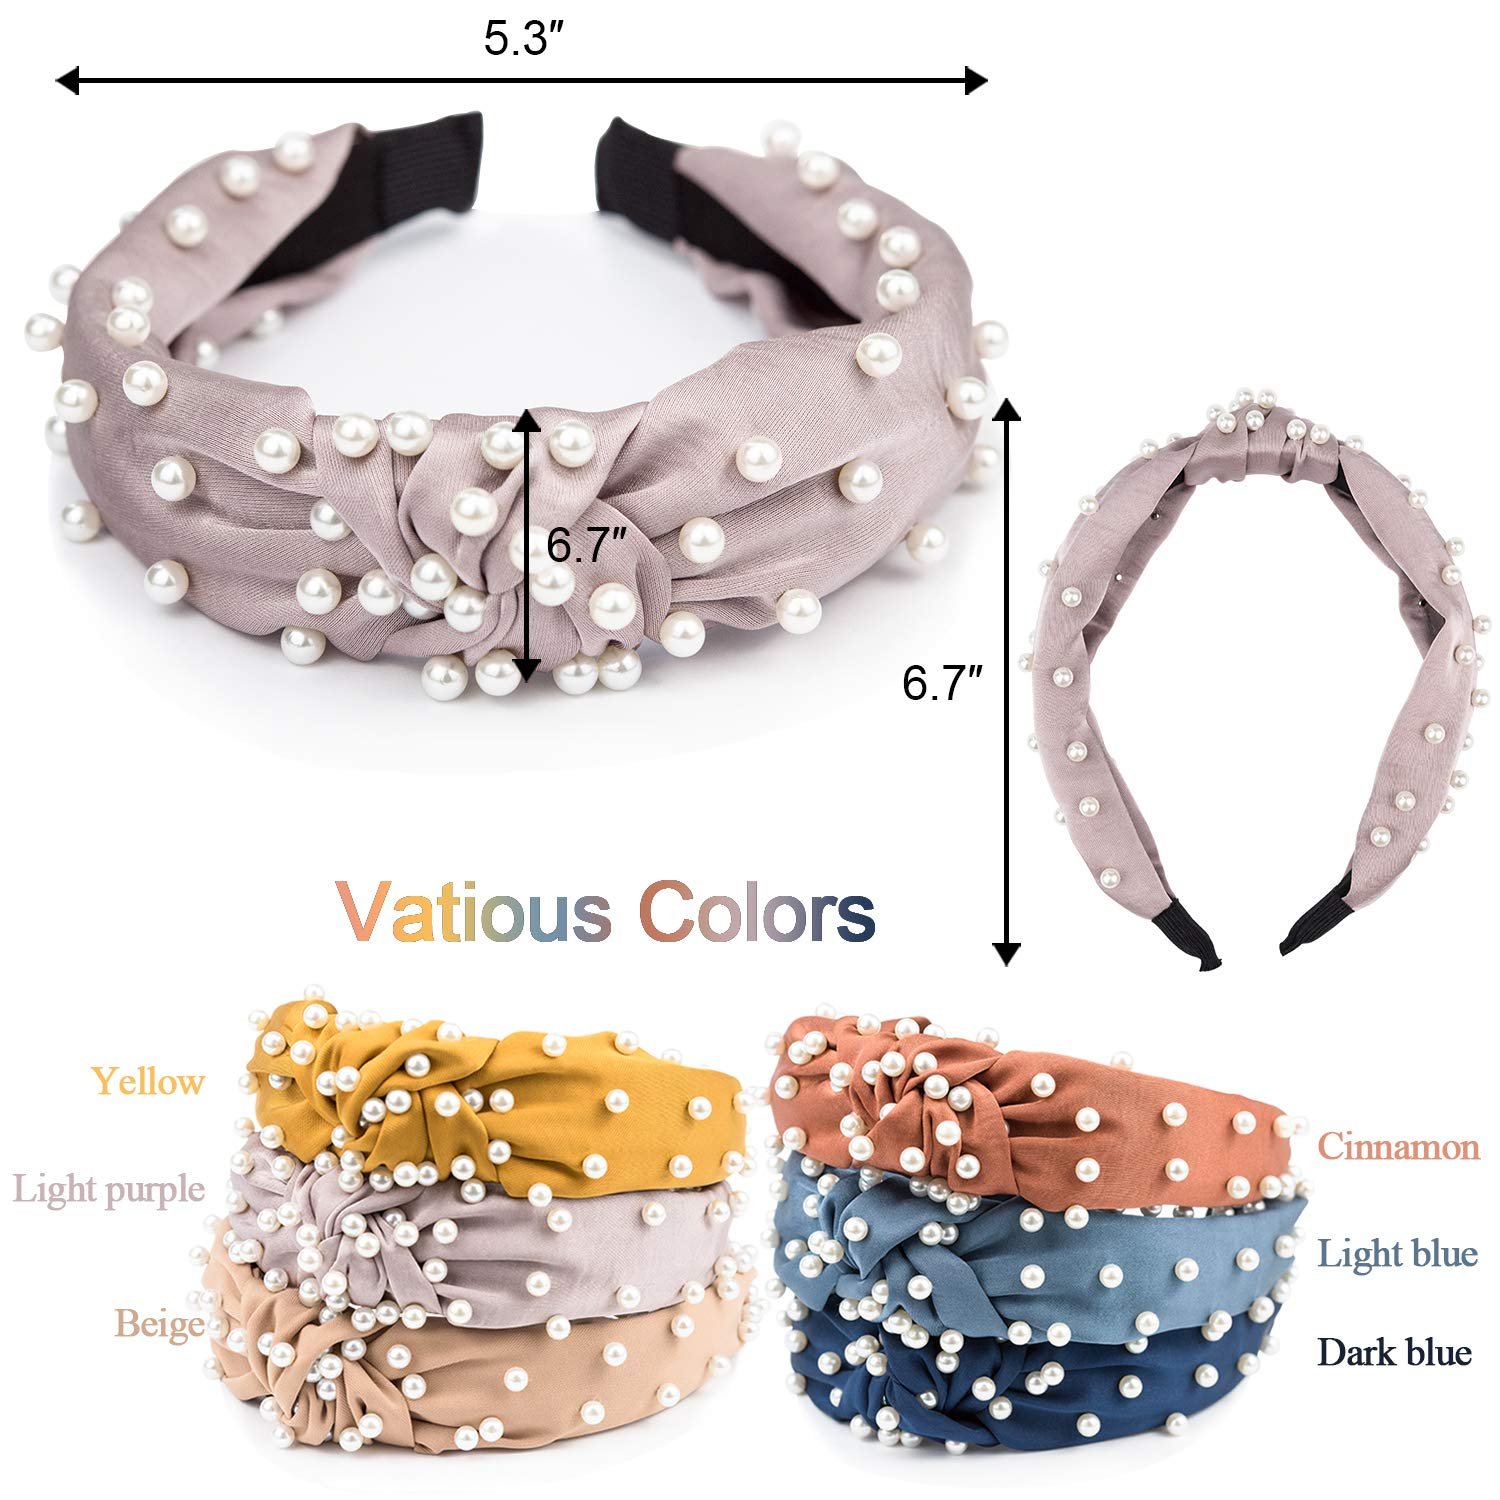 EAONE Pearl Headbands Knotted Headbands for Women 6 Colors, Knot Turban Headband Fashion Hair Bands Wide Headbands Hair Accessories for Girls with 1 Pouch Bag : Beauty